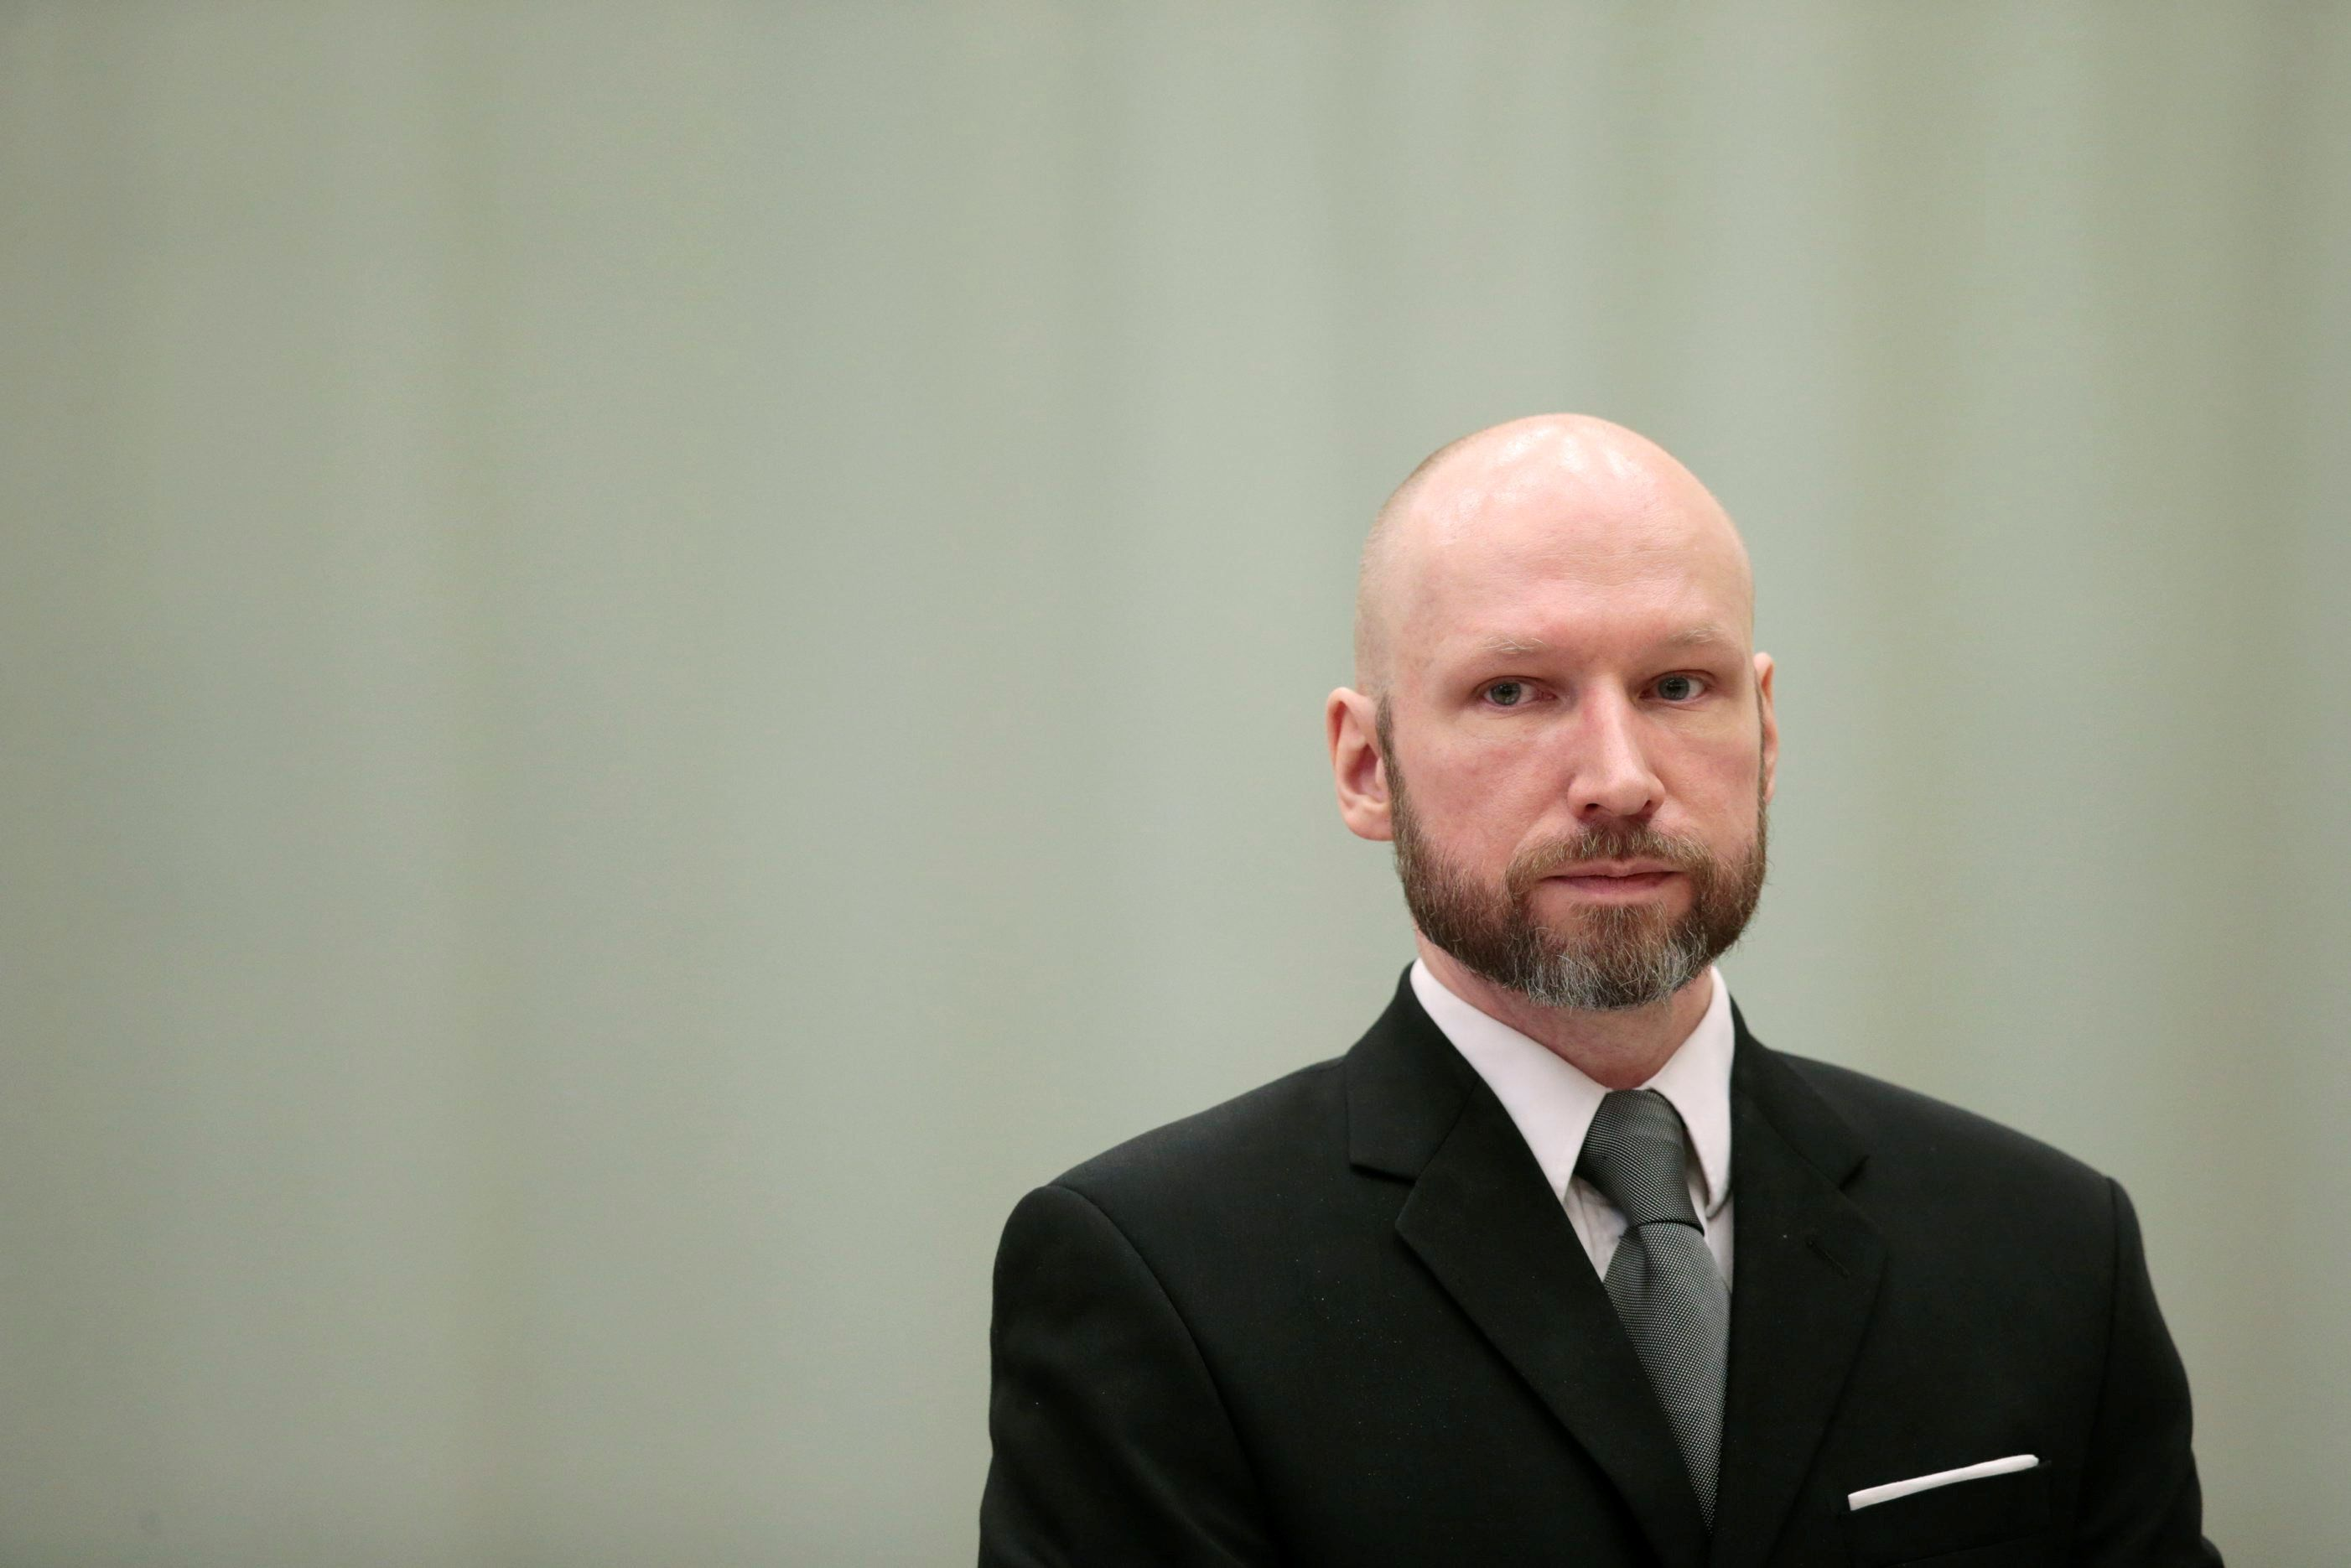 Anders Behring Breivik is pictured on the last day of the appeal case in Borgarting Court of Appeal at Telemark prison in Skien, Norway, January 18, 2017. NTB Scanpix/Lise Aaserud via REUTERS        ATTENTION EDITORS - THIS IMAGE WAS PROVIDED BY A THIRD PARTY. FOR EDITORIAL USE ONLY. NOT FOR SALE FOR MARKETING OR ADVERTISING CAMPAIGNS. NORWAY OUT. NO COMMERCIAL OR EDITORIAL SALES IN NORWAY. NO COMMERCIAL SALES.